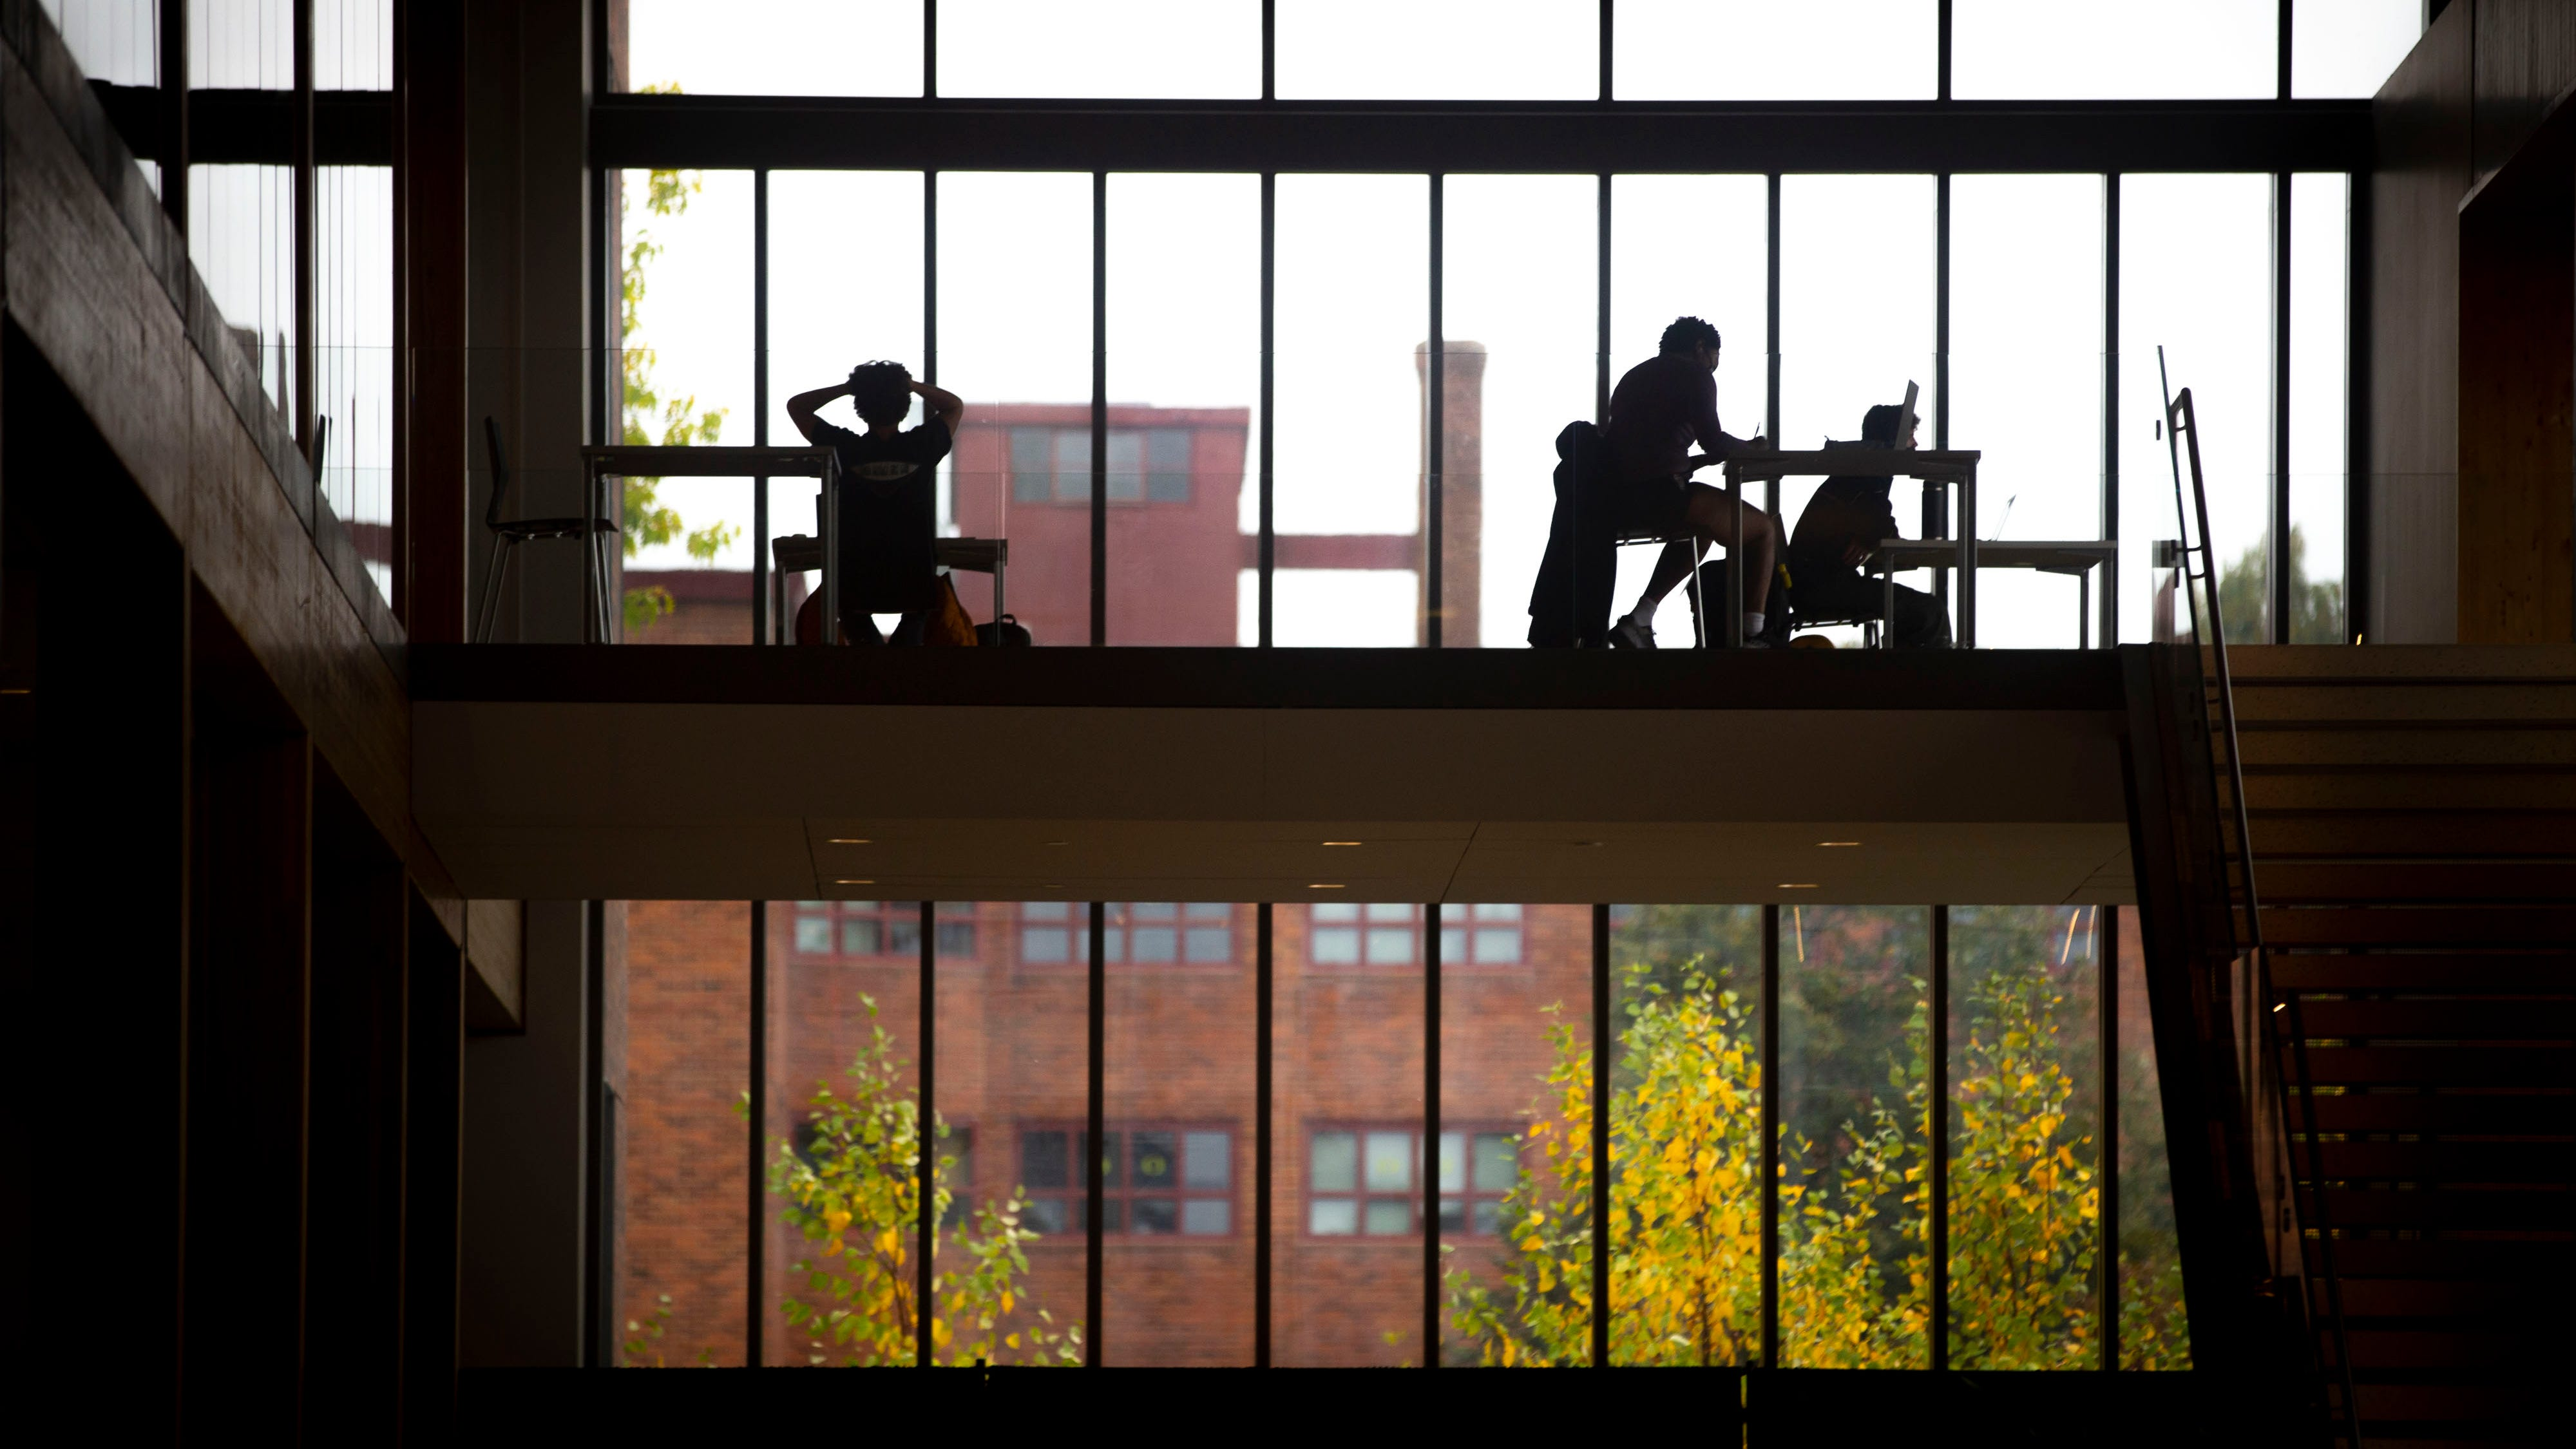 Students study in the Erb Memorial Union at University of Oregon.